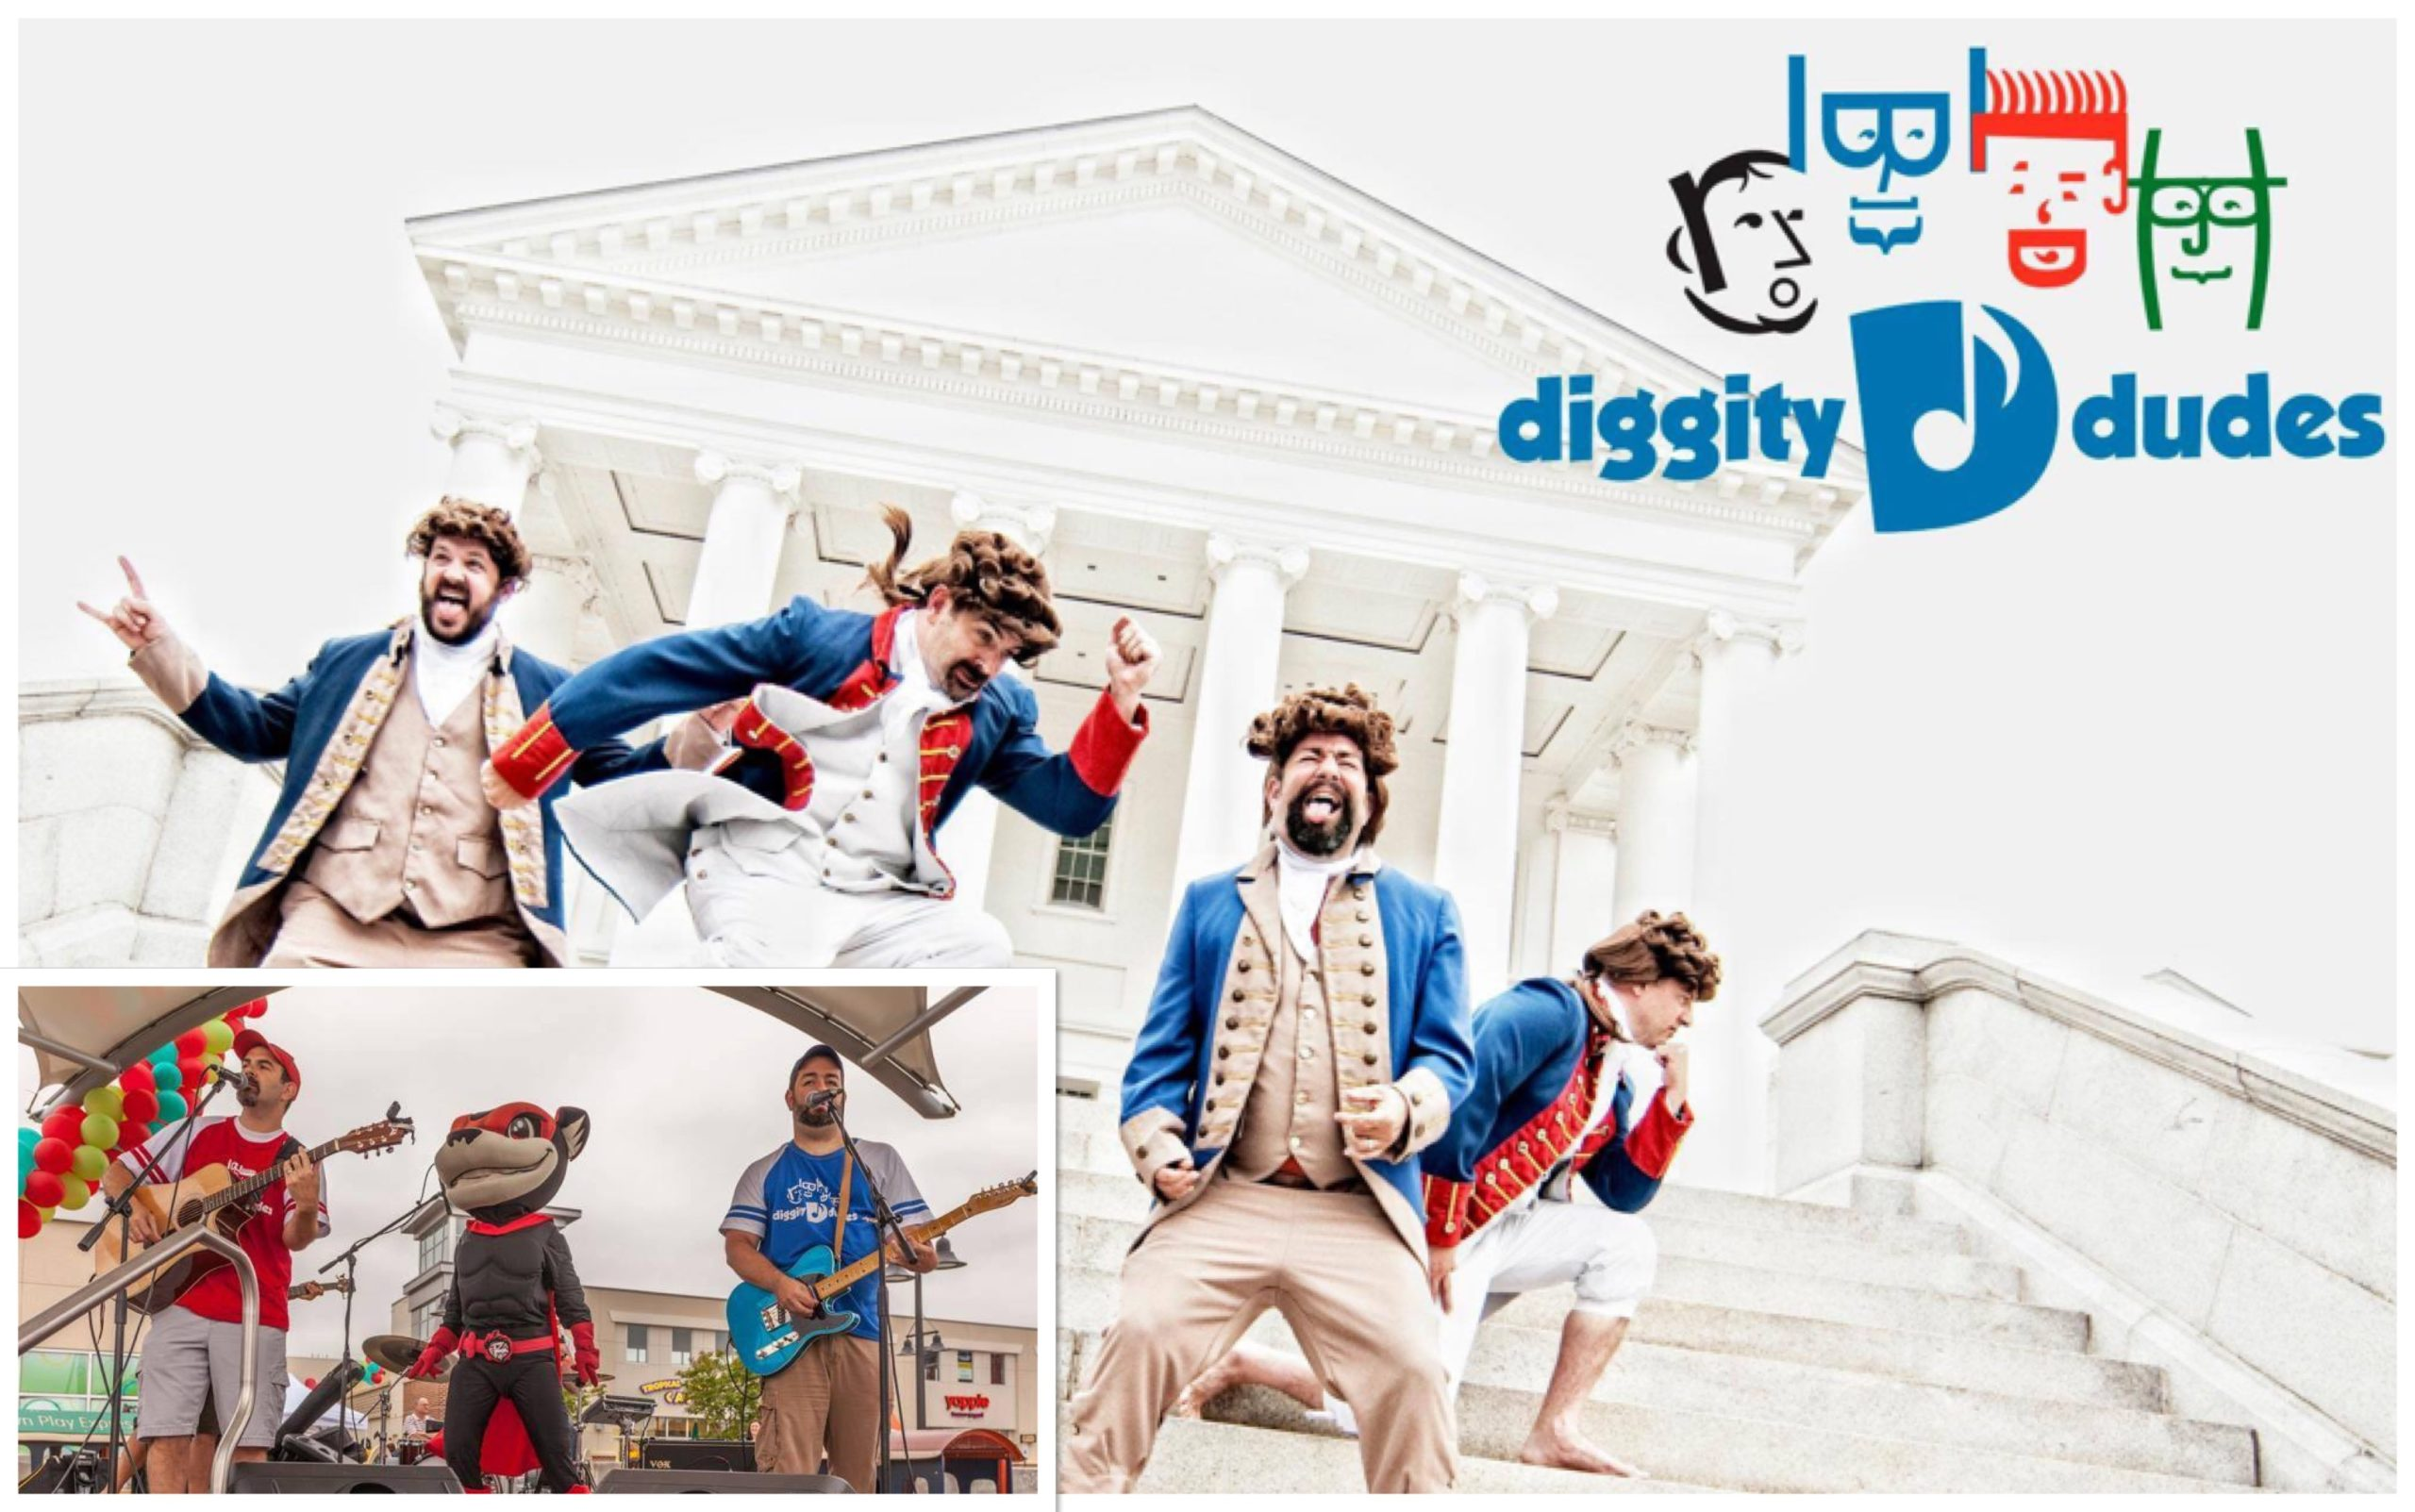 The Diggity Dudes Are Back! Tenth Anniversary Family Concert Is Sunday, June 23